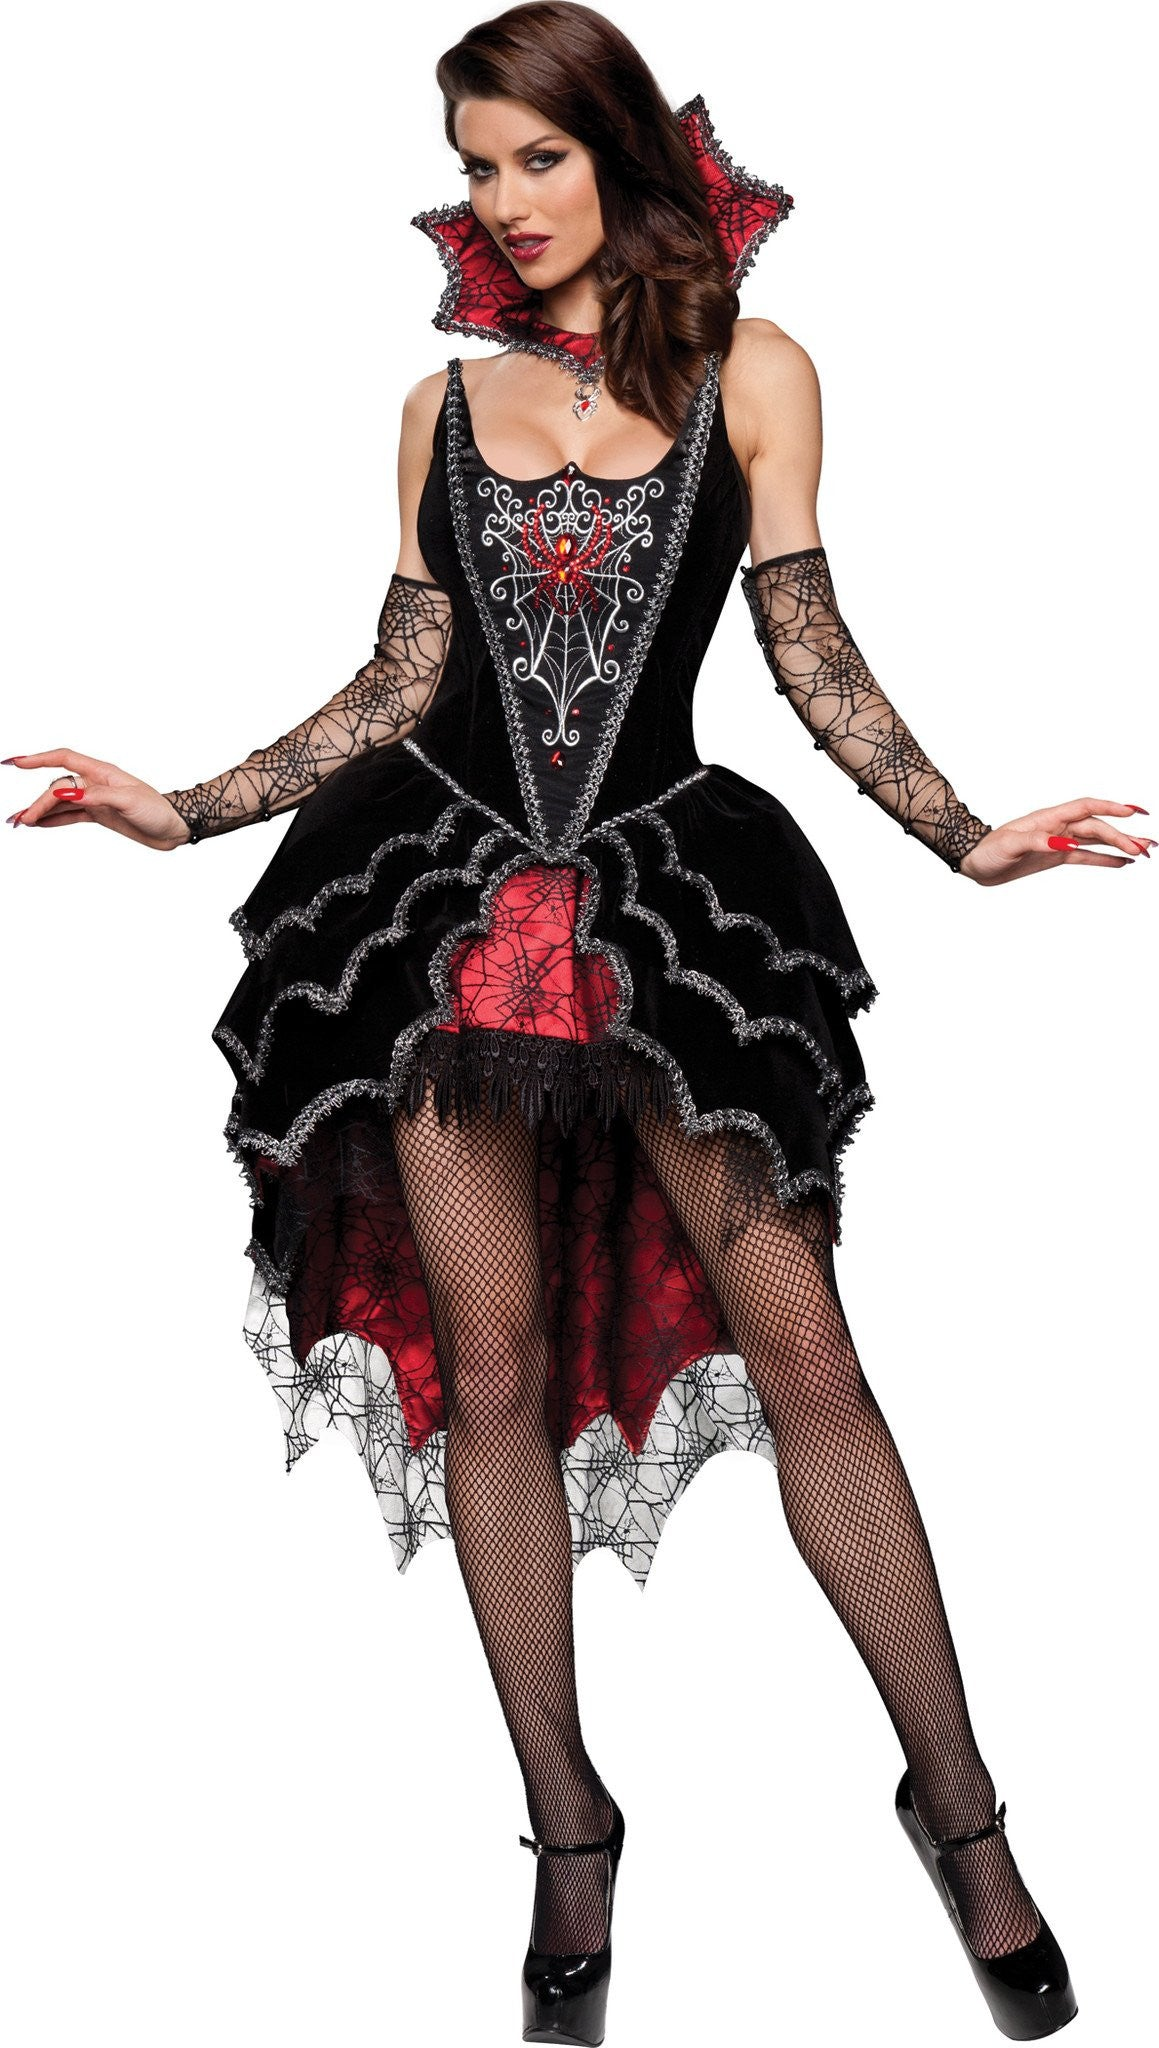 Costume City - One stop shop for Halloween costumes